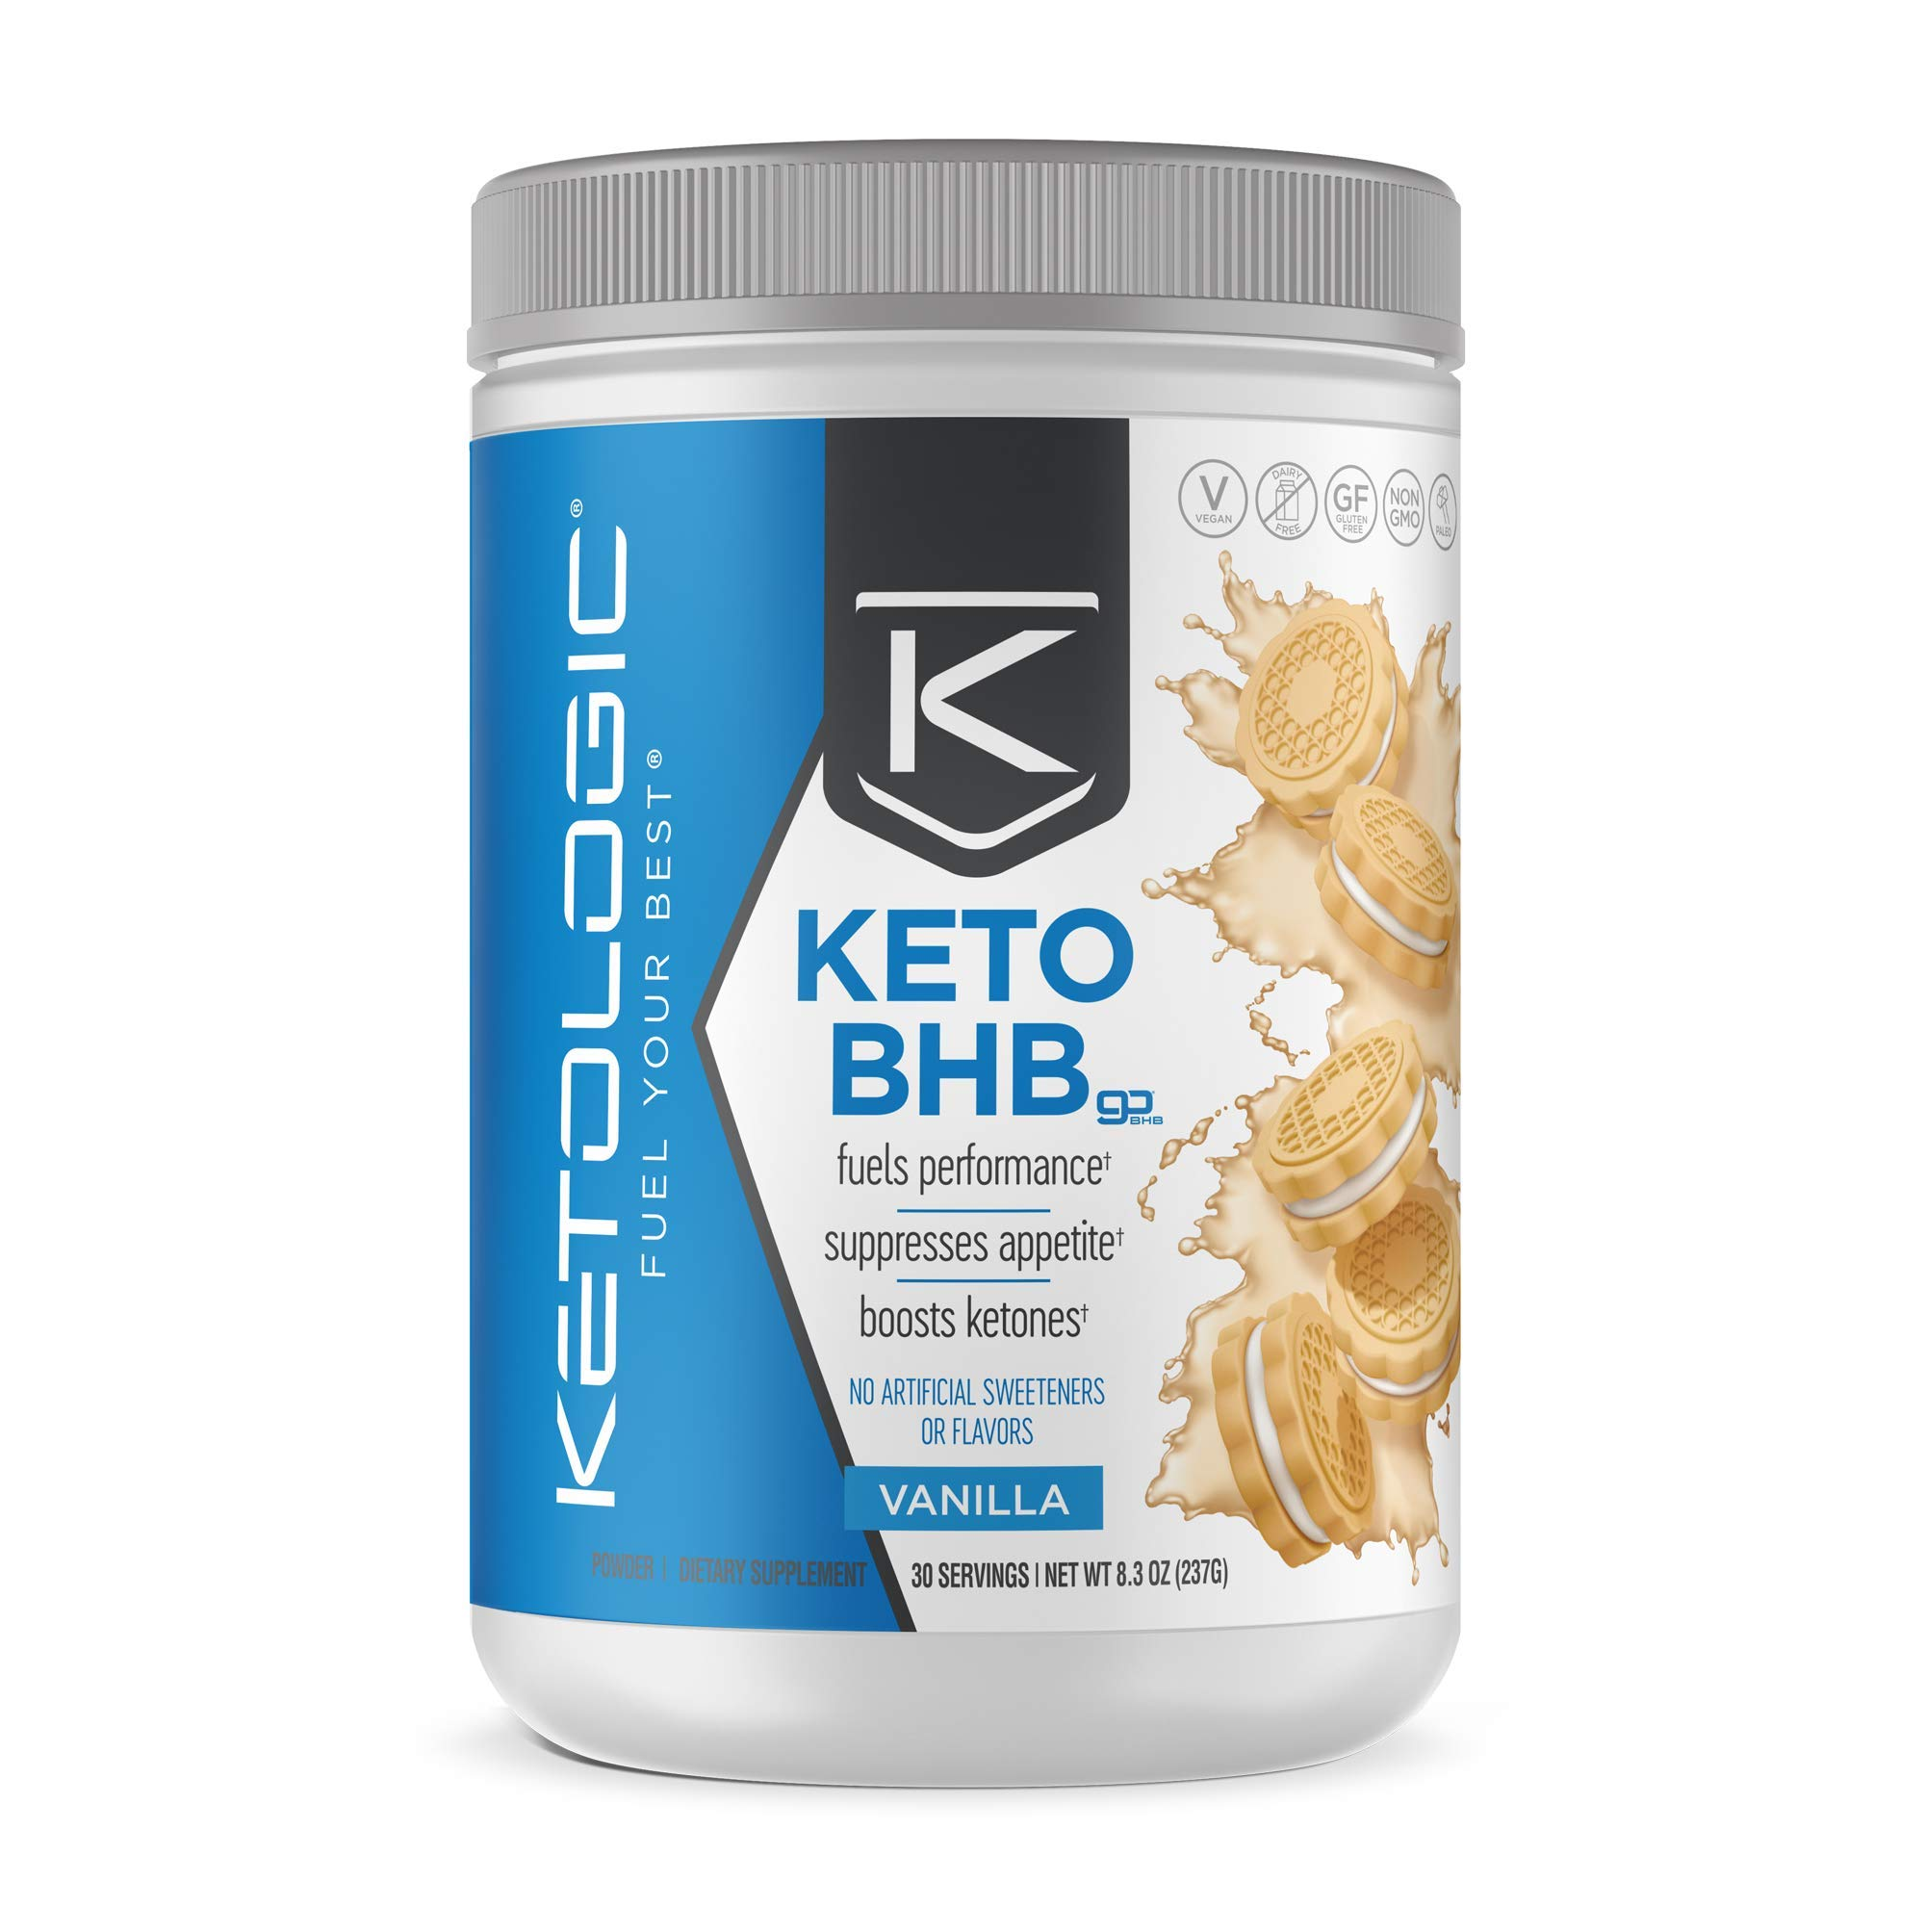 KetoLogic Keto BHB - Exogenous Ketones Supplement   Supports Ketosis & Weight Management, Increases Energy & Focus   Low Carb, Electrolytes, Beta-Hydroxybutyrate BHB Salts   Vanilla - 30 Servings by Ketologic